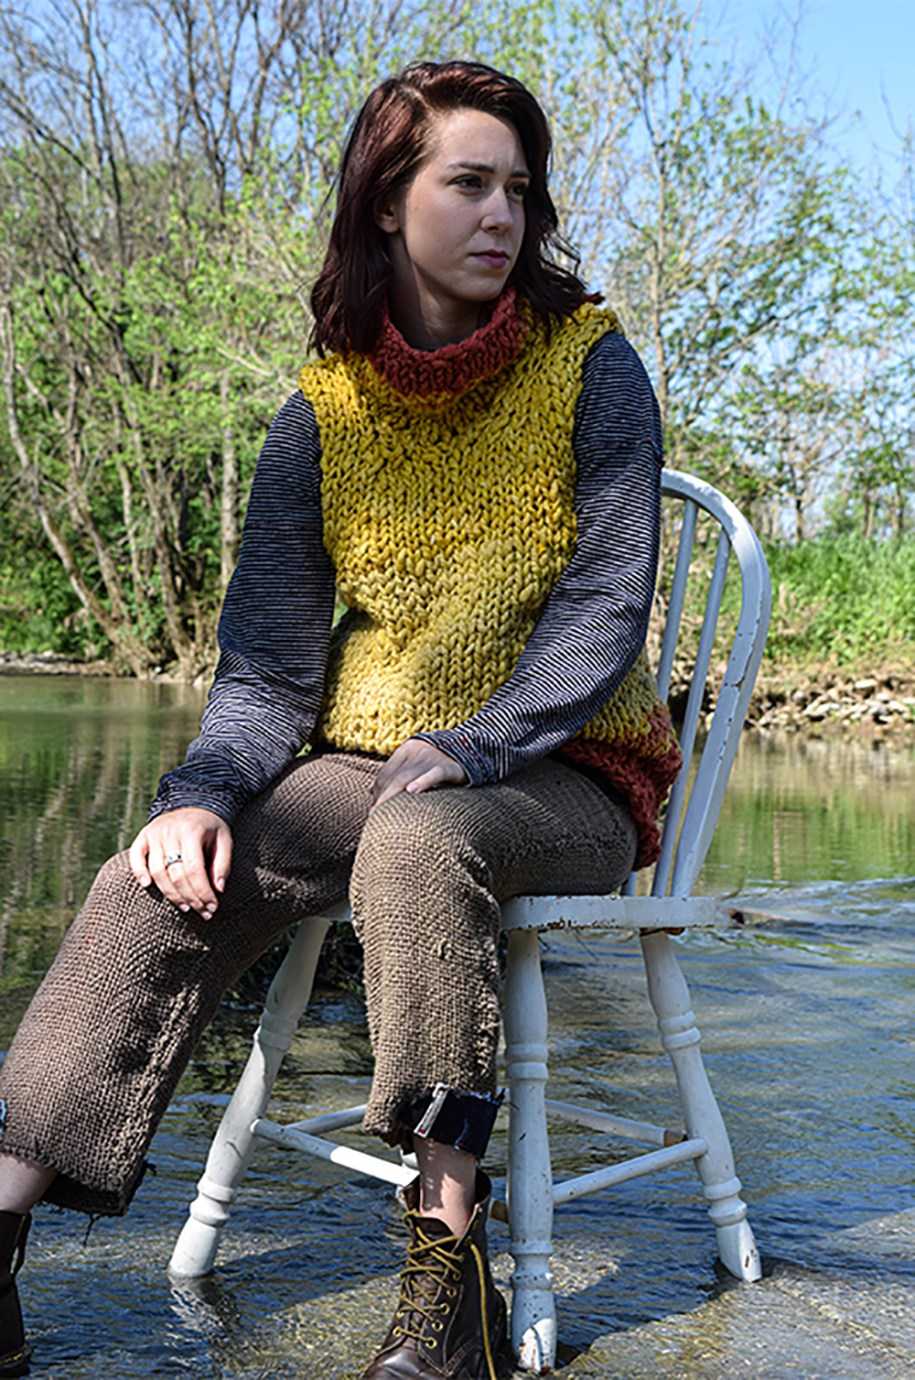 Jenna in Hand Spun, Dyed, Knit Wool Sweater, with Raglan Top, and Hand Woven Trouser.